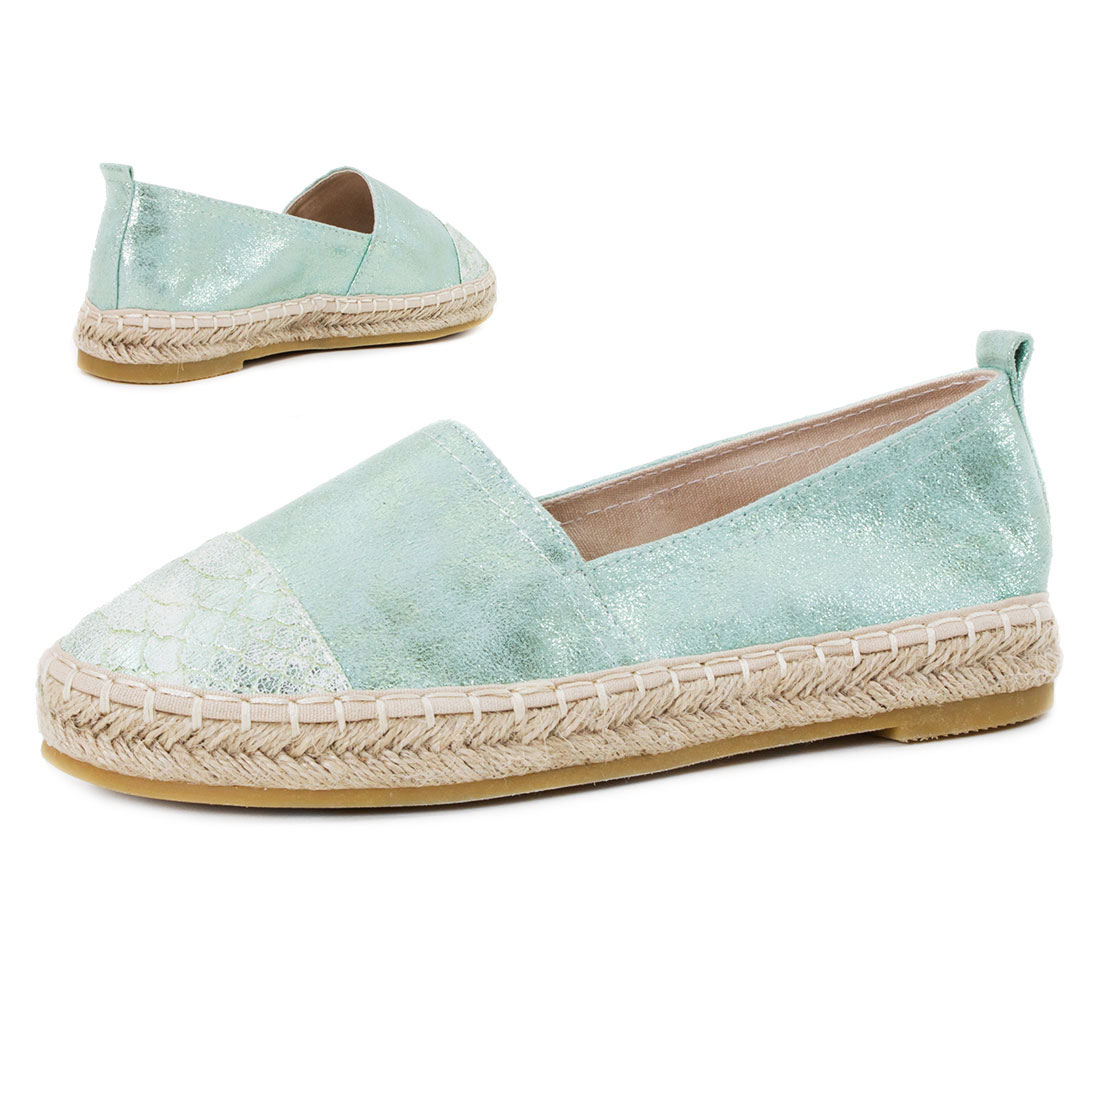 damen metallic espadrilles strass pailletten glitzer schuhe 36 37 38 39 40 41 ebay. Black Bedroom Furniture Sets. Home Design Ideas